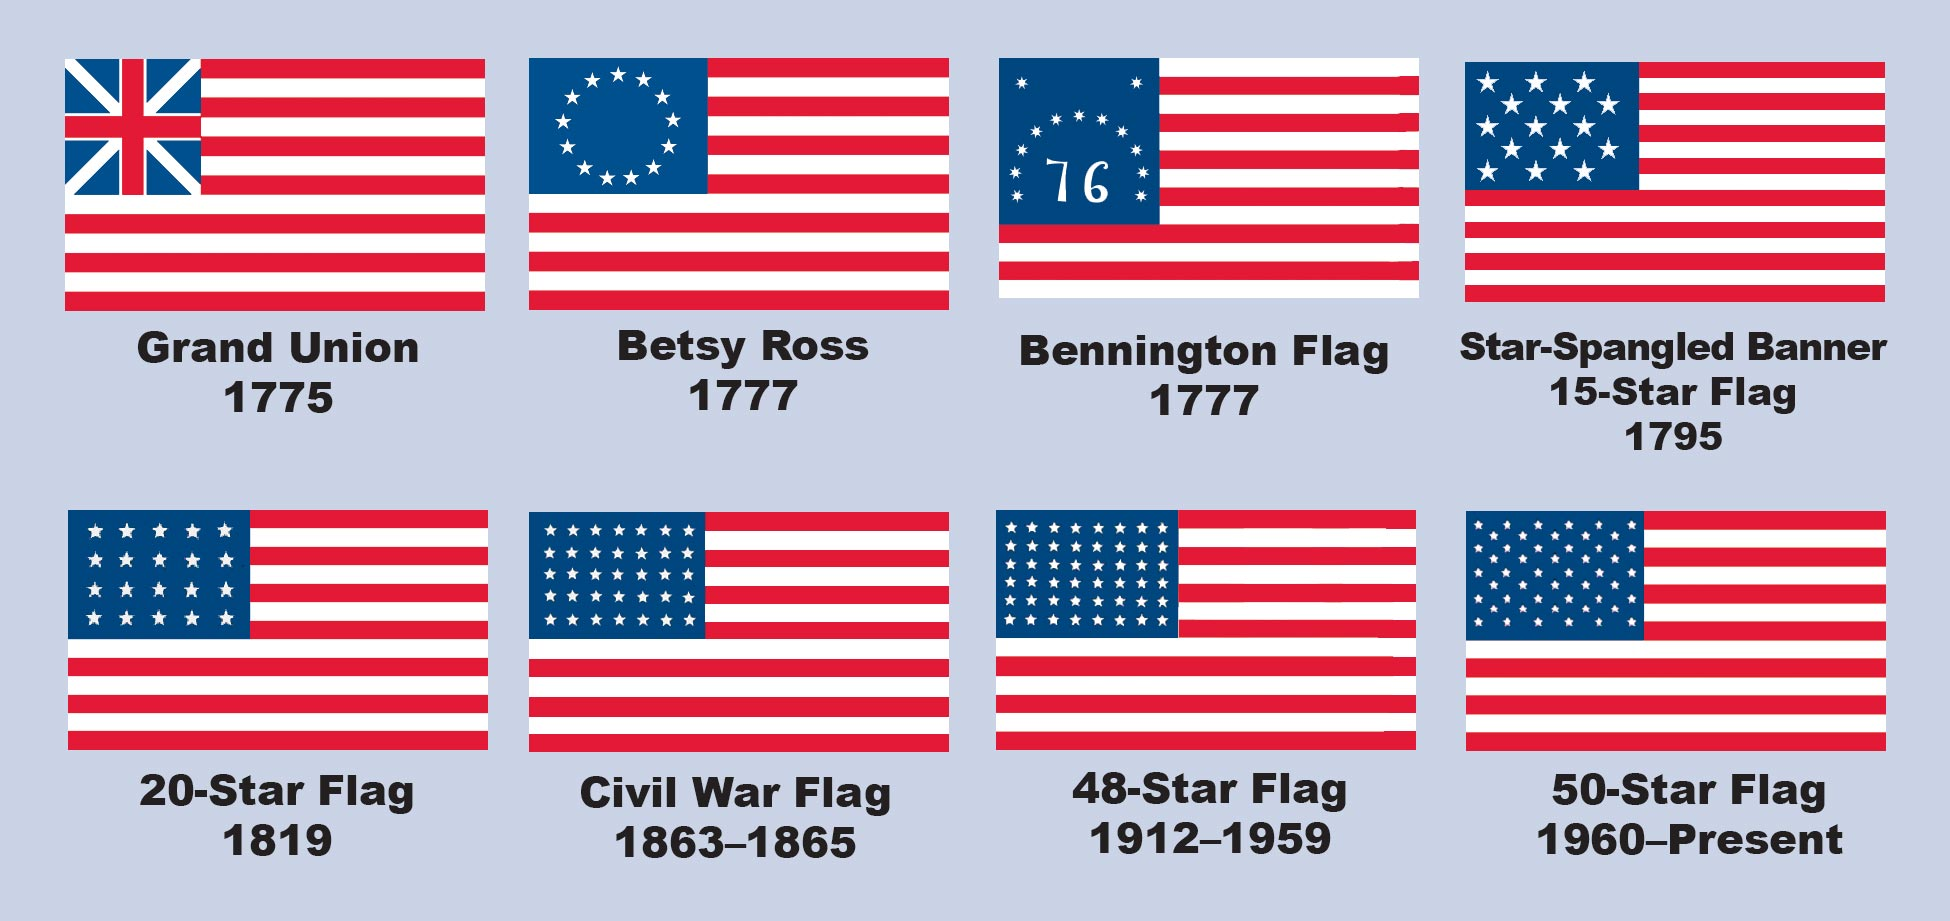 Many different flags have flown over the United States